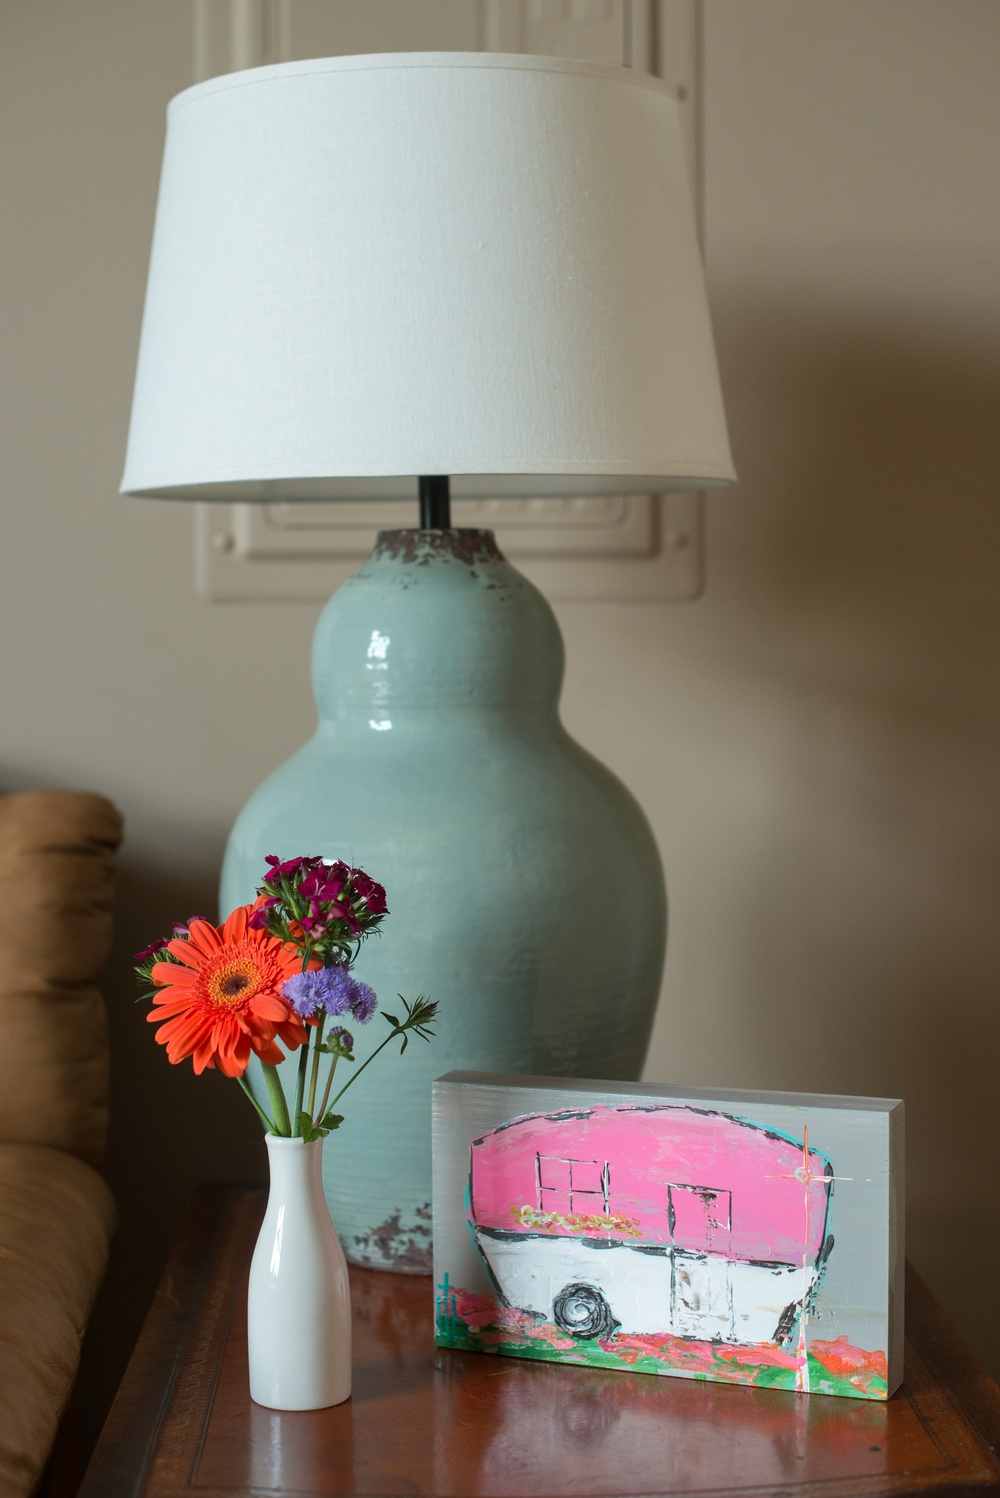 Lamp from Pottery Barn (this came straight off our wedding registry and we love it!)